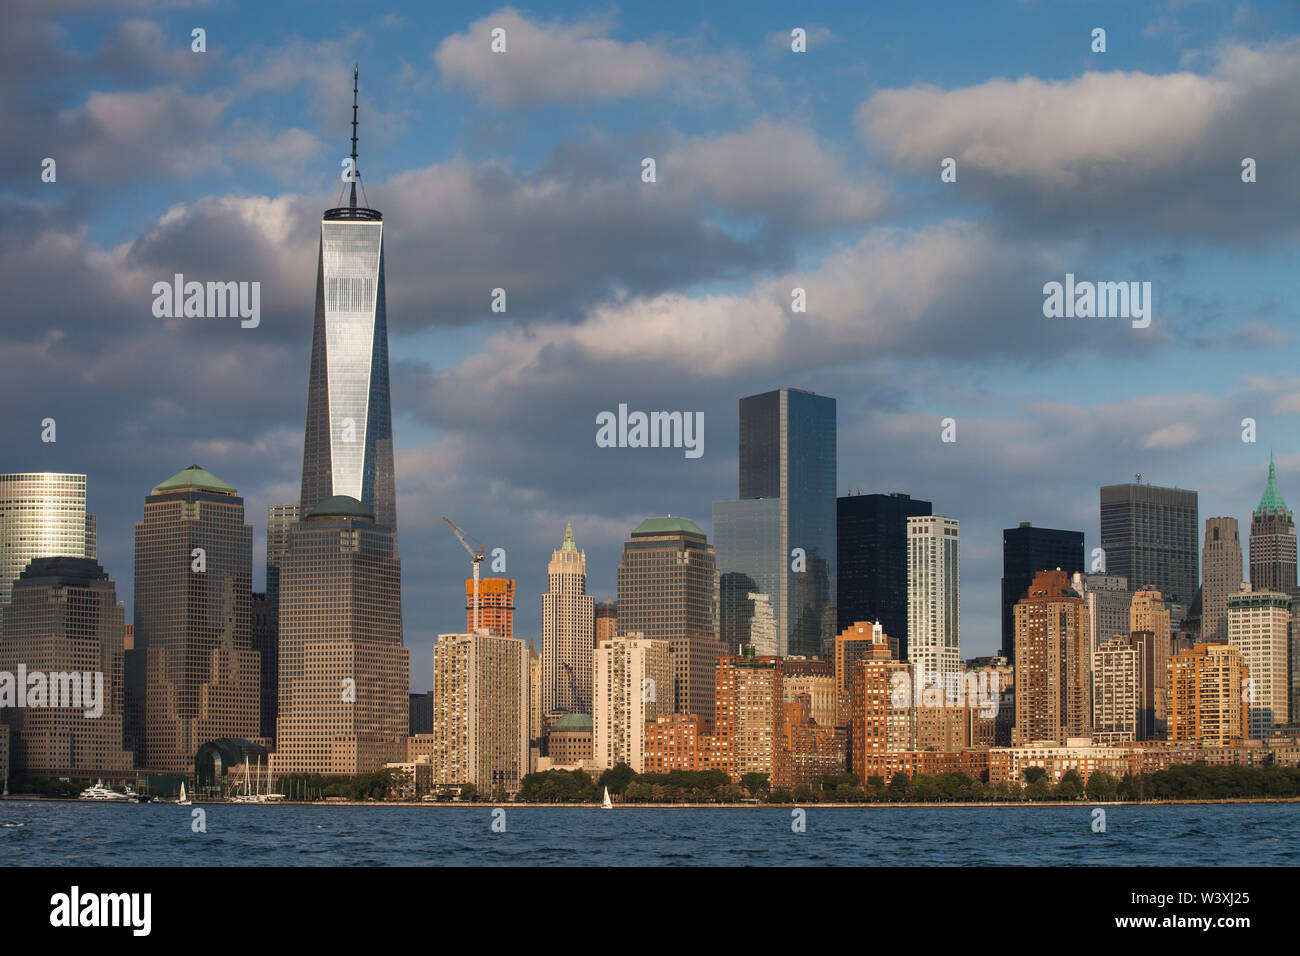 A view of Lower Manhattan from Liberty State Park - Stock Image